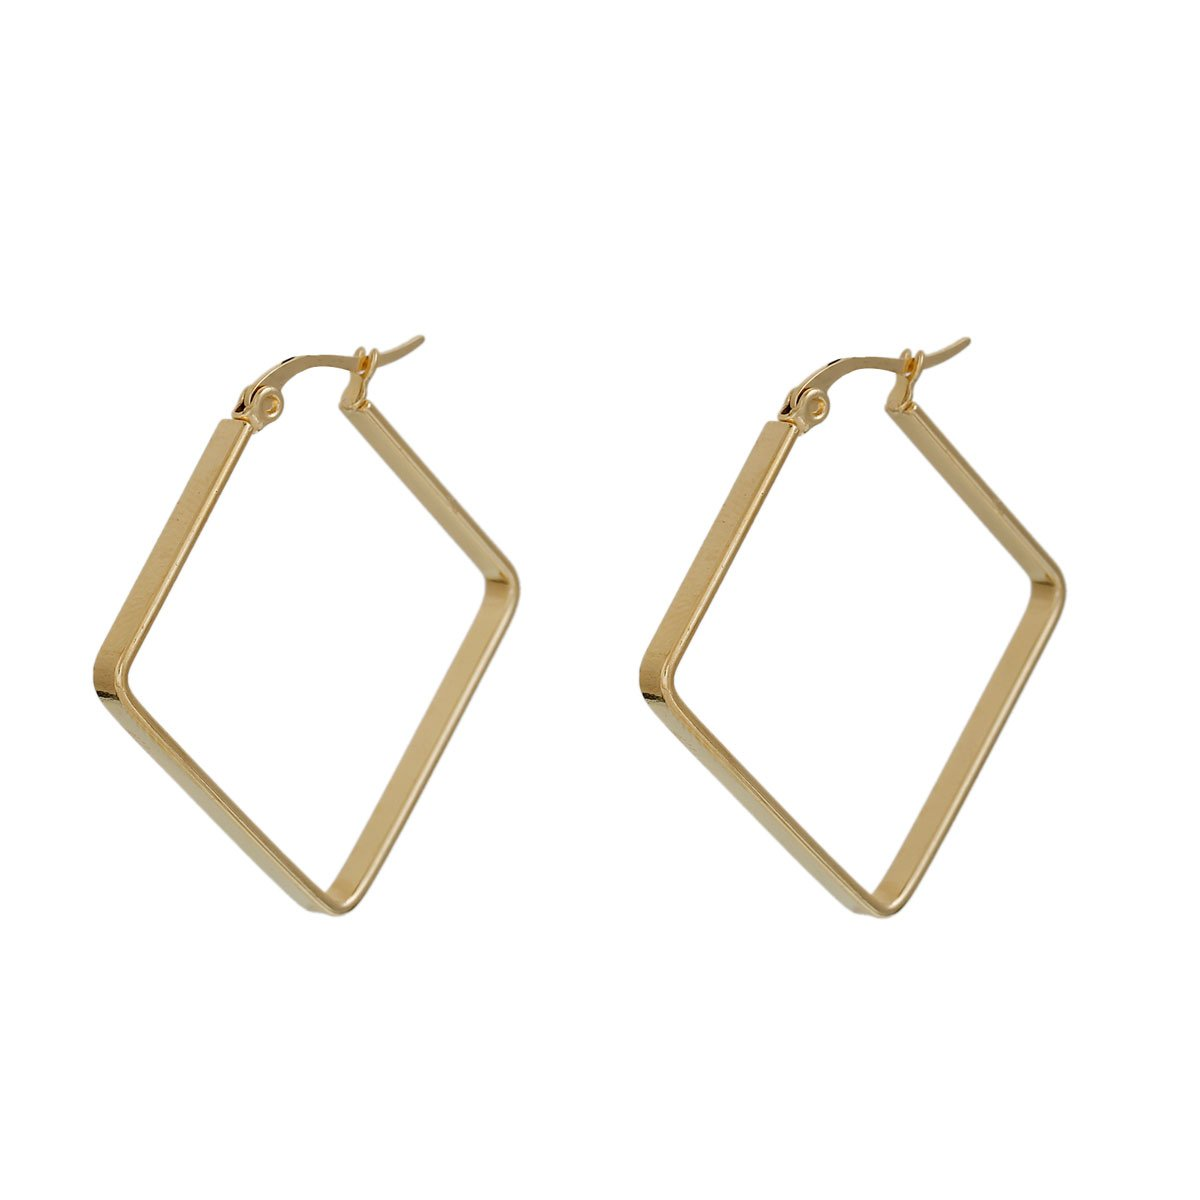 304 Stainless Steel Hoop Earrings Gold Plated Rhombus 38mm